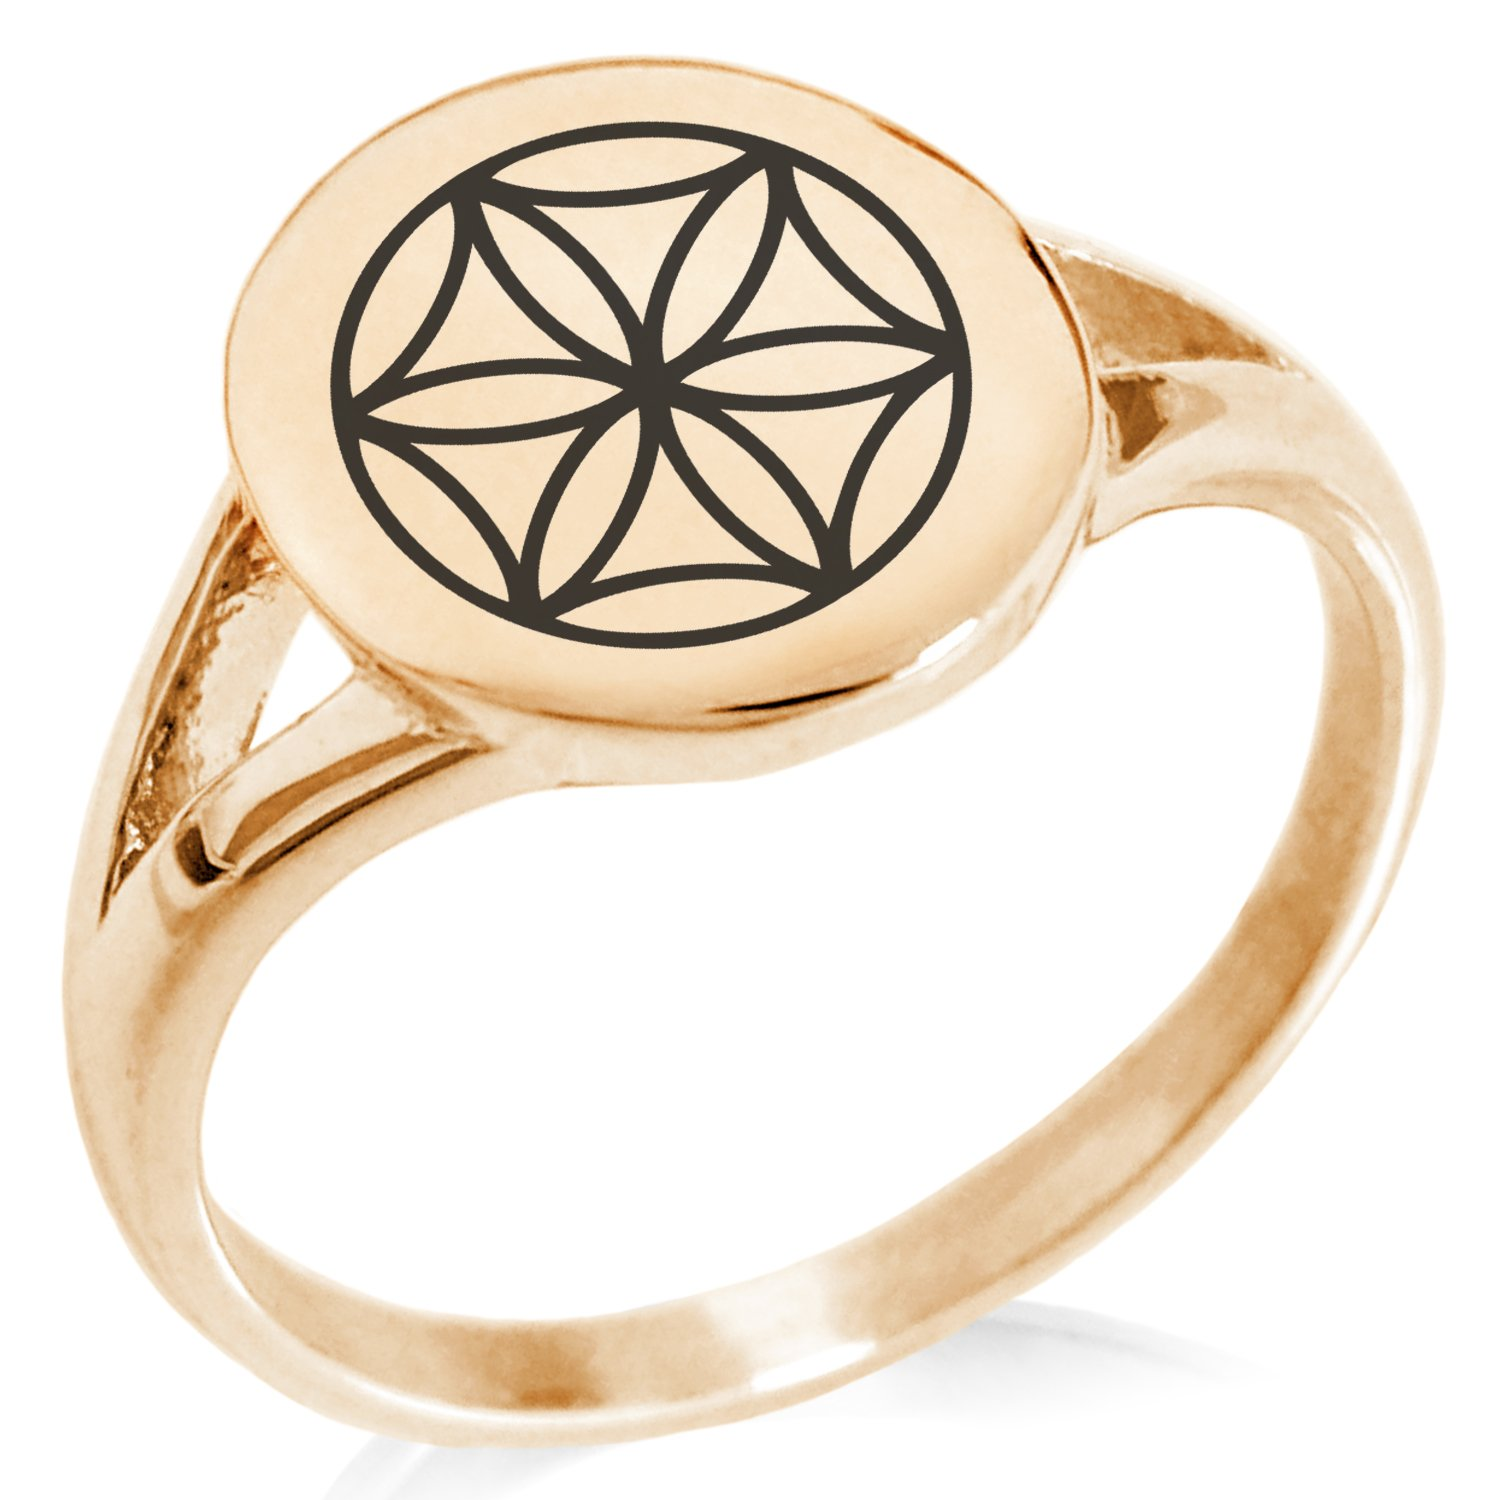 Tioneer Rose Gold Plated Stainless Steel Aphrodite Greek Goddess of Love Symbol Minimalist Oval Top Polished Statement Ring, Size 9